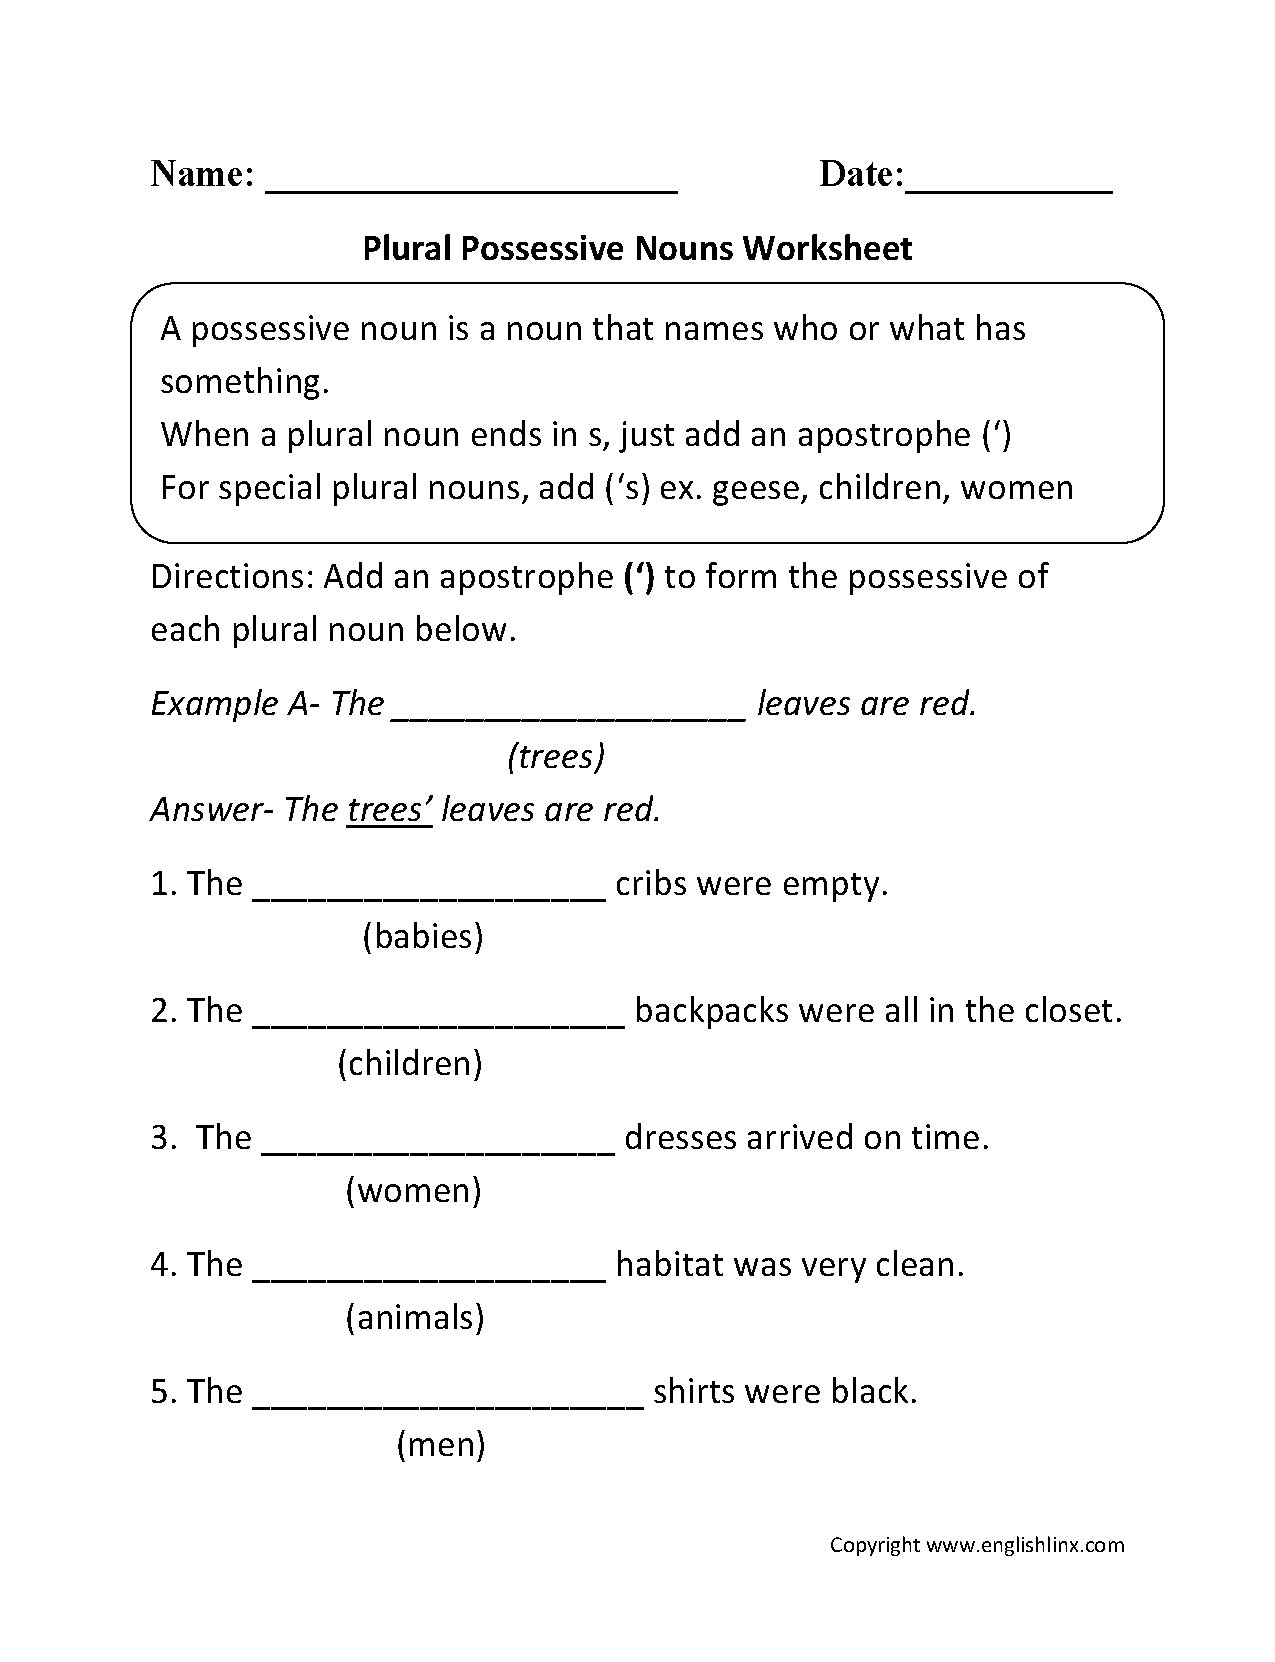 Aldiablosus  Pretty Nouns Worksheets  Possessive Nouns Worksheets With Heavenly Possessive Nouns Worksheets With Divine Reading And Comprehension Worksheets Also Ten More Ten Less Worksheets In Addition Factors Of Production Worksheet And Parts Of A Map Worksheet As Well As Gerund Worksheet Additionally Digestion Worksheet From Englishlinxcom With Aldiablosus  Heavenly Nouns Worksheets  Possessive Nouns Worksheets With Divine Possessive Nouns Worksheets And Pretty Reading And Comprehension Worksheets Also Ten More Ten Less Worksheets In Addition Factors Of Production Worksheet From Englishlinxcom